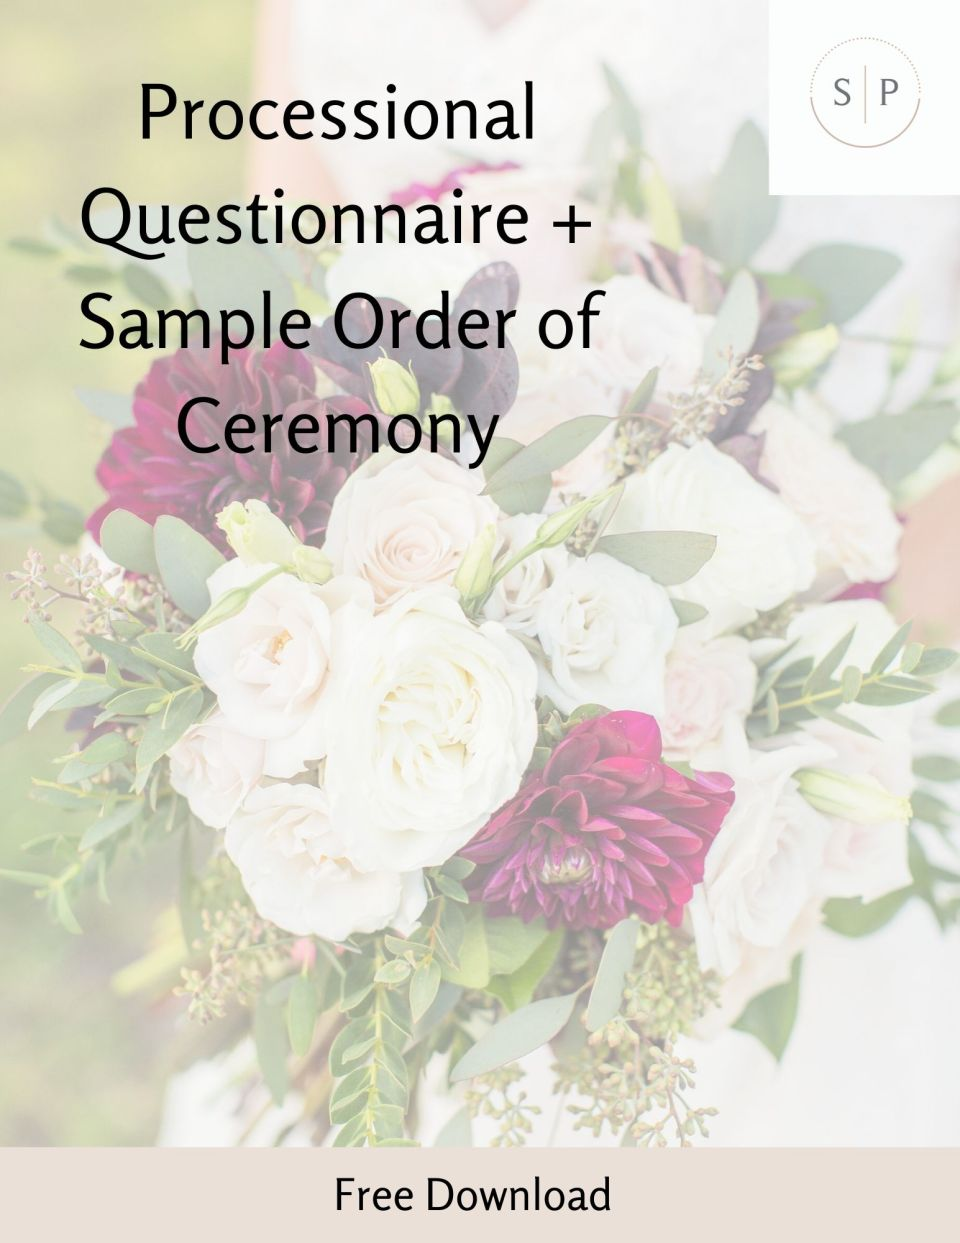 Processional Questionnaire + Sample Order of Ceremony